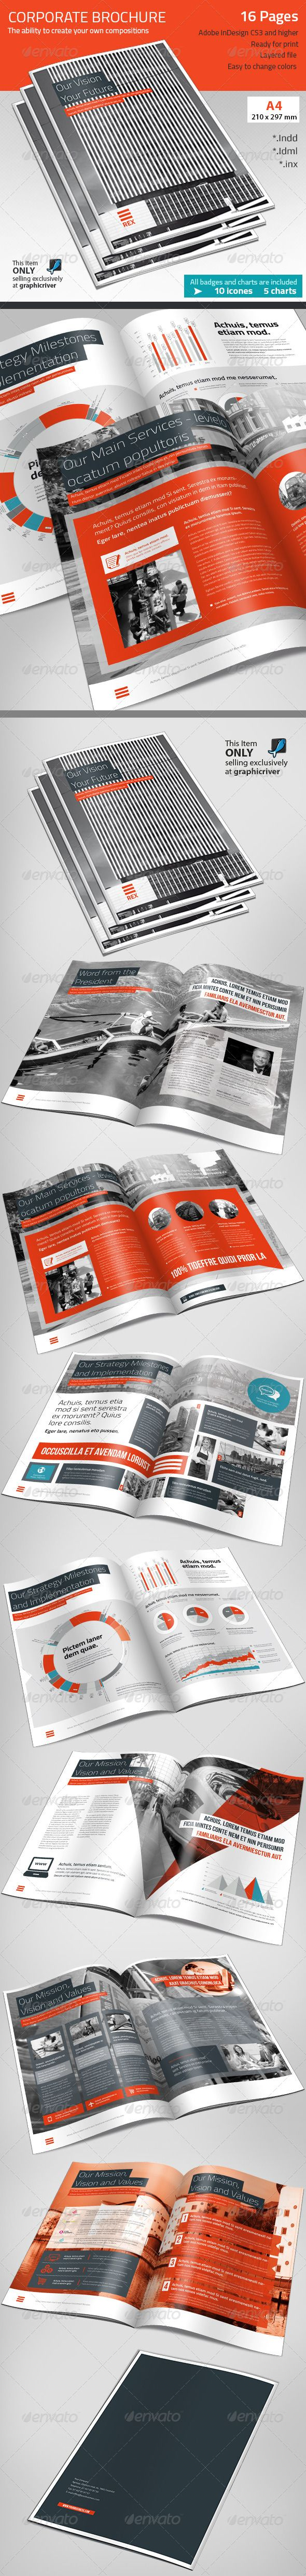 71 best Hotel Brochure images on Pinterest | Page layout ...